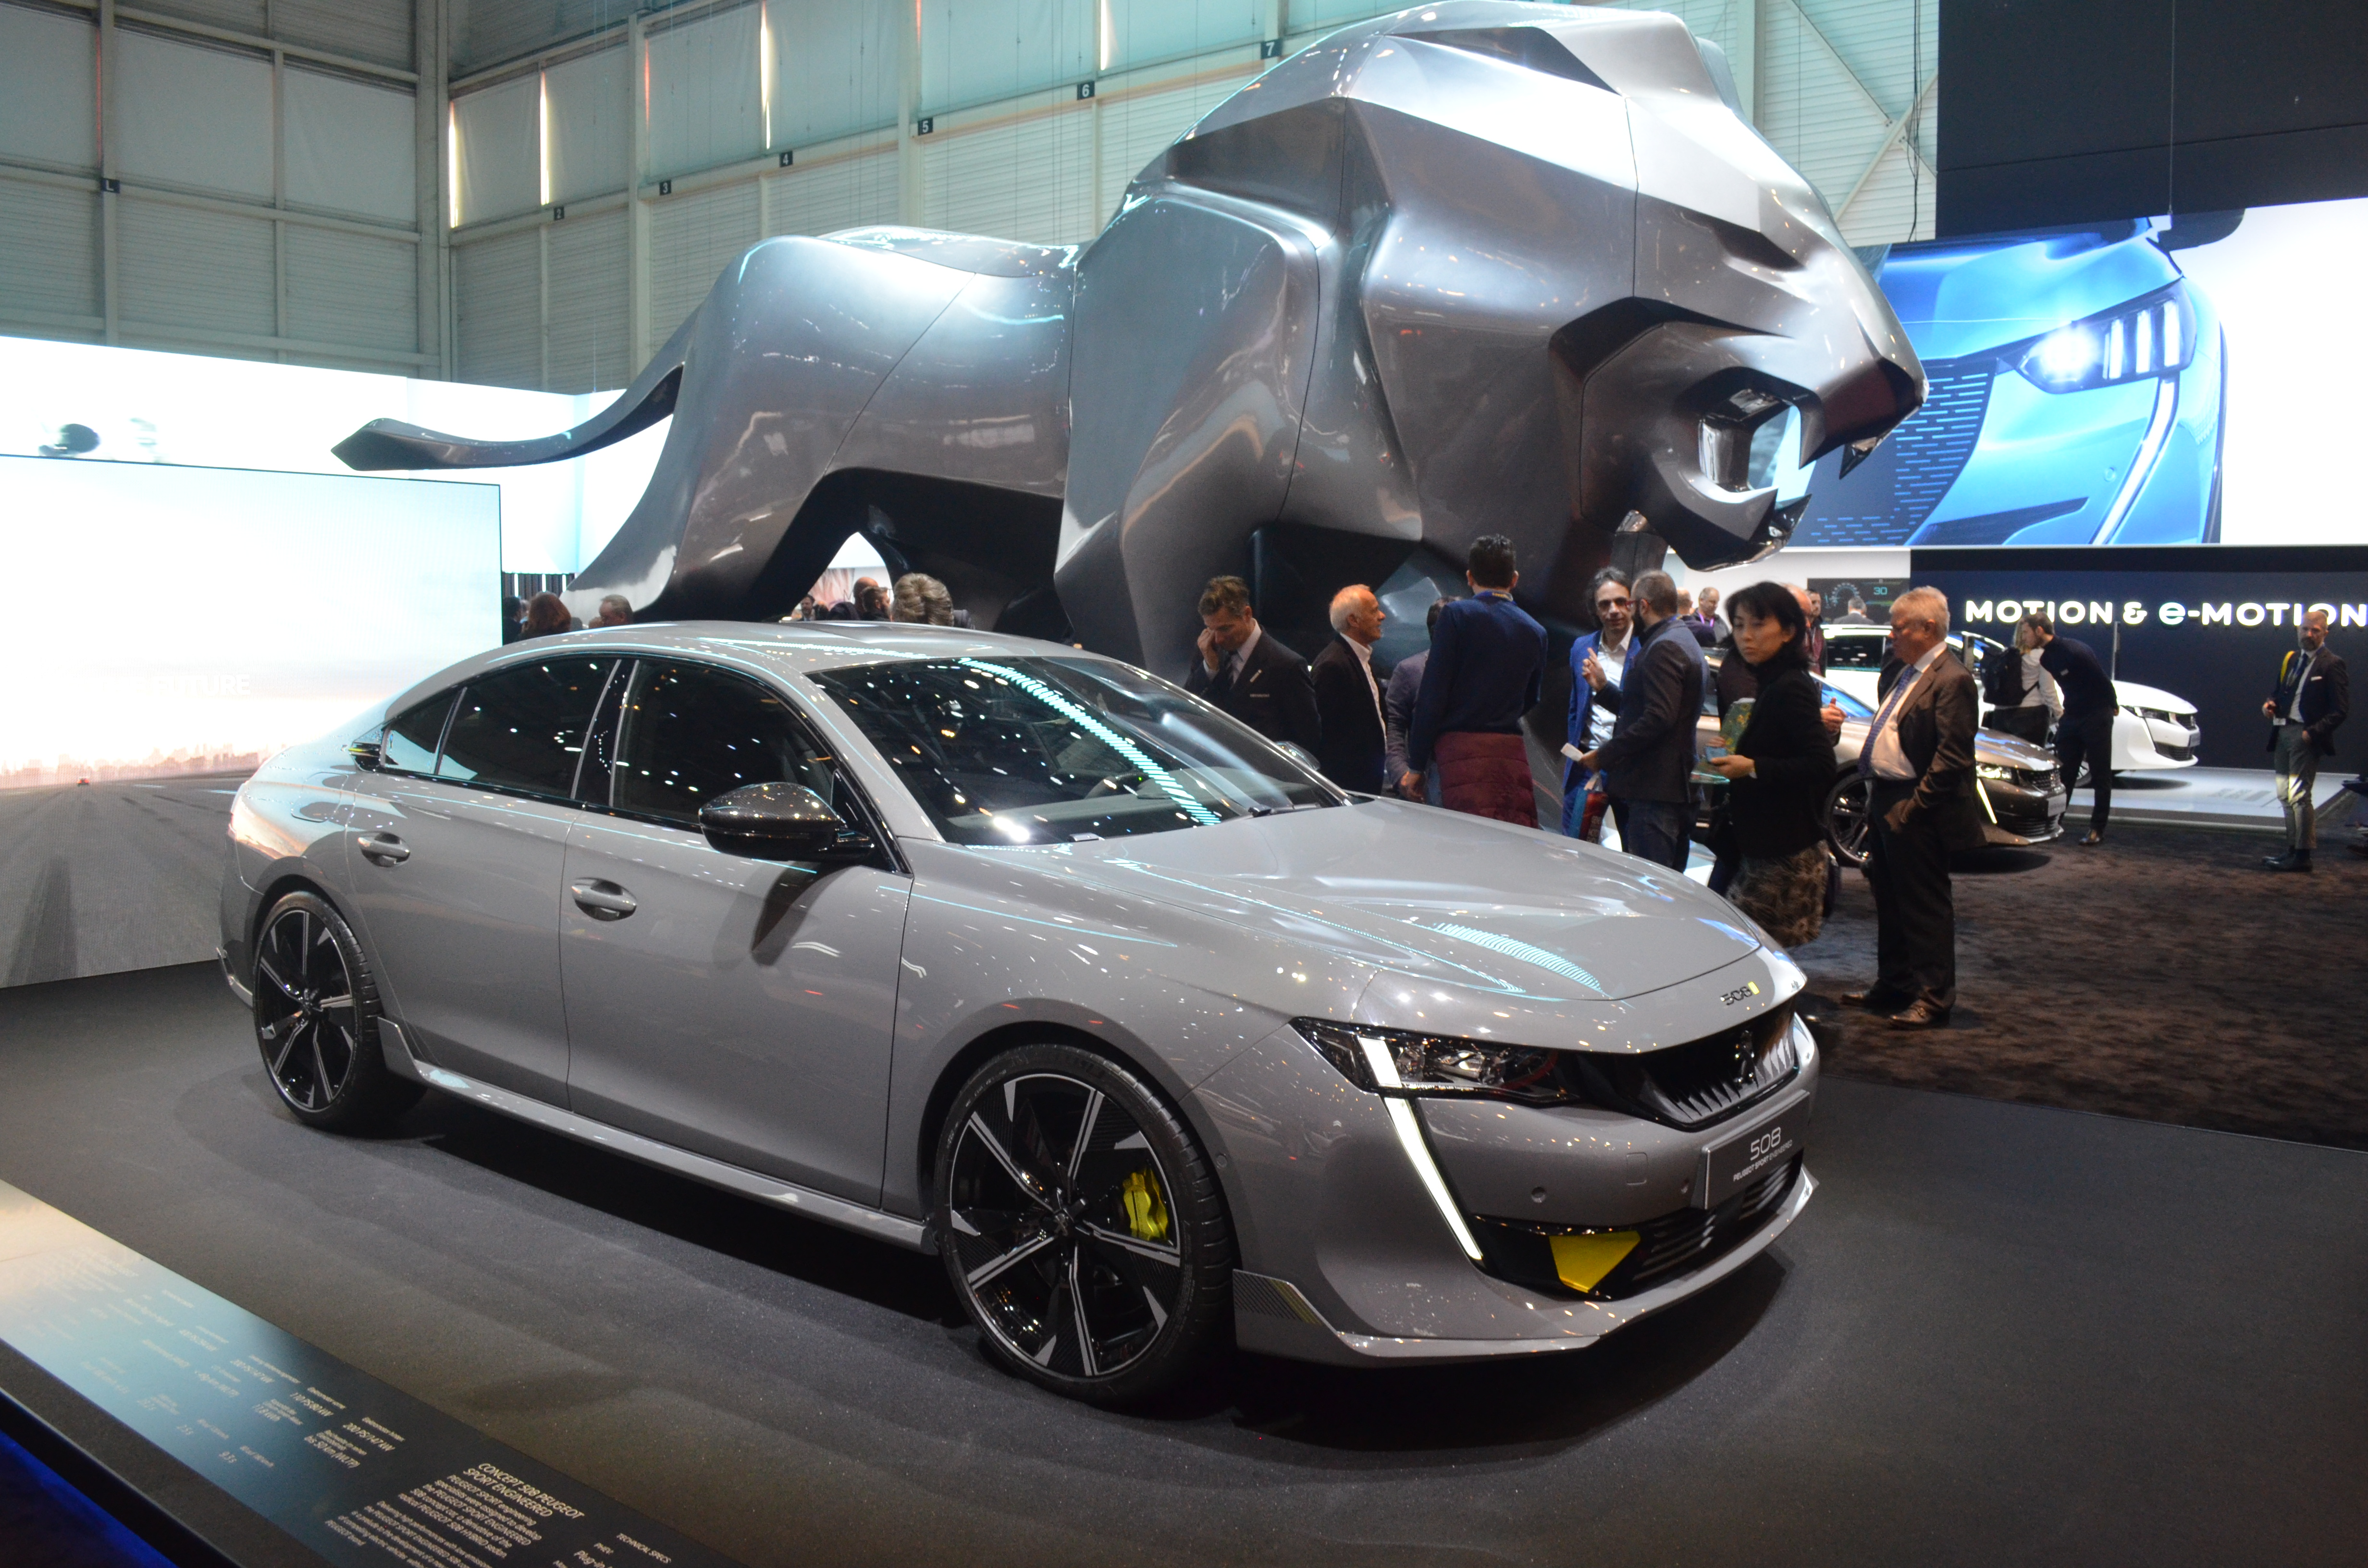 peugeot-508-sport-engineered-salone-ginevra-2019